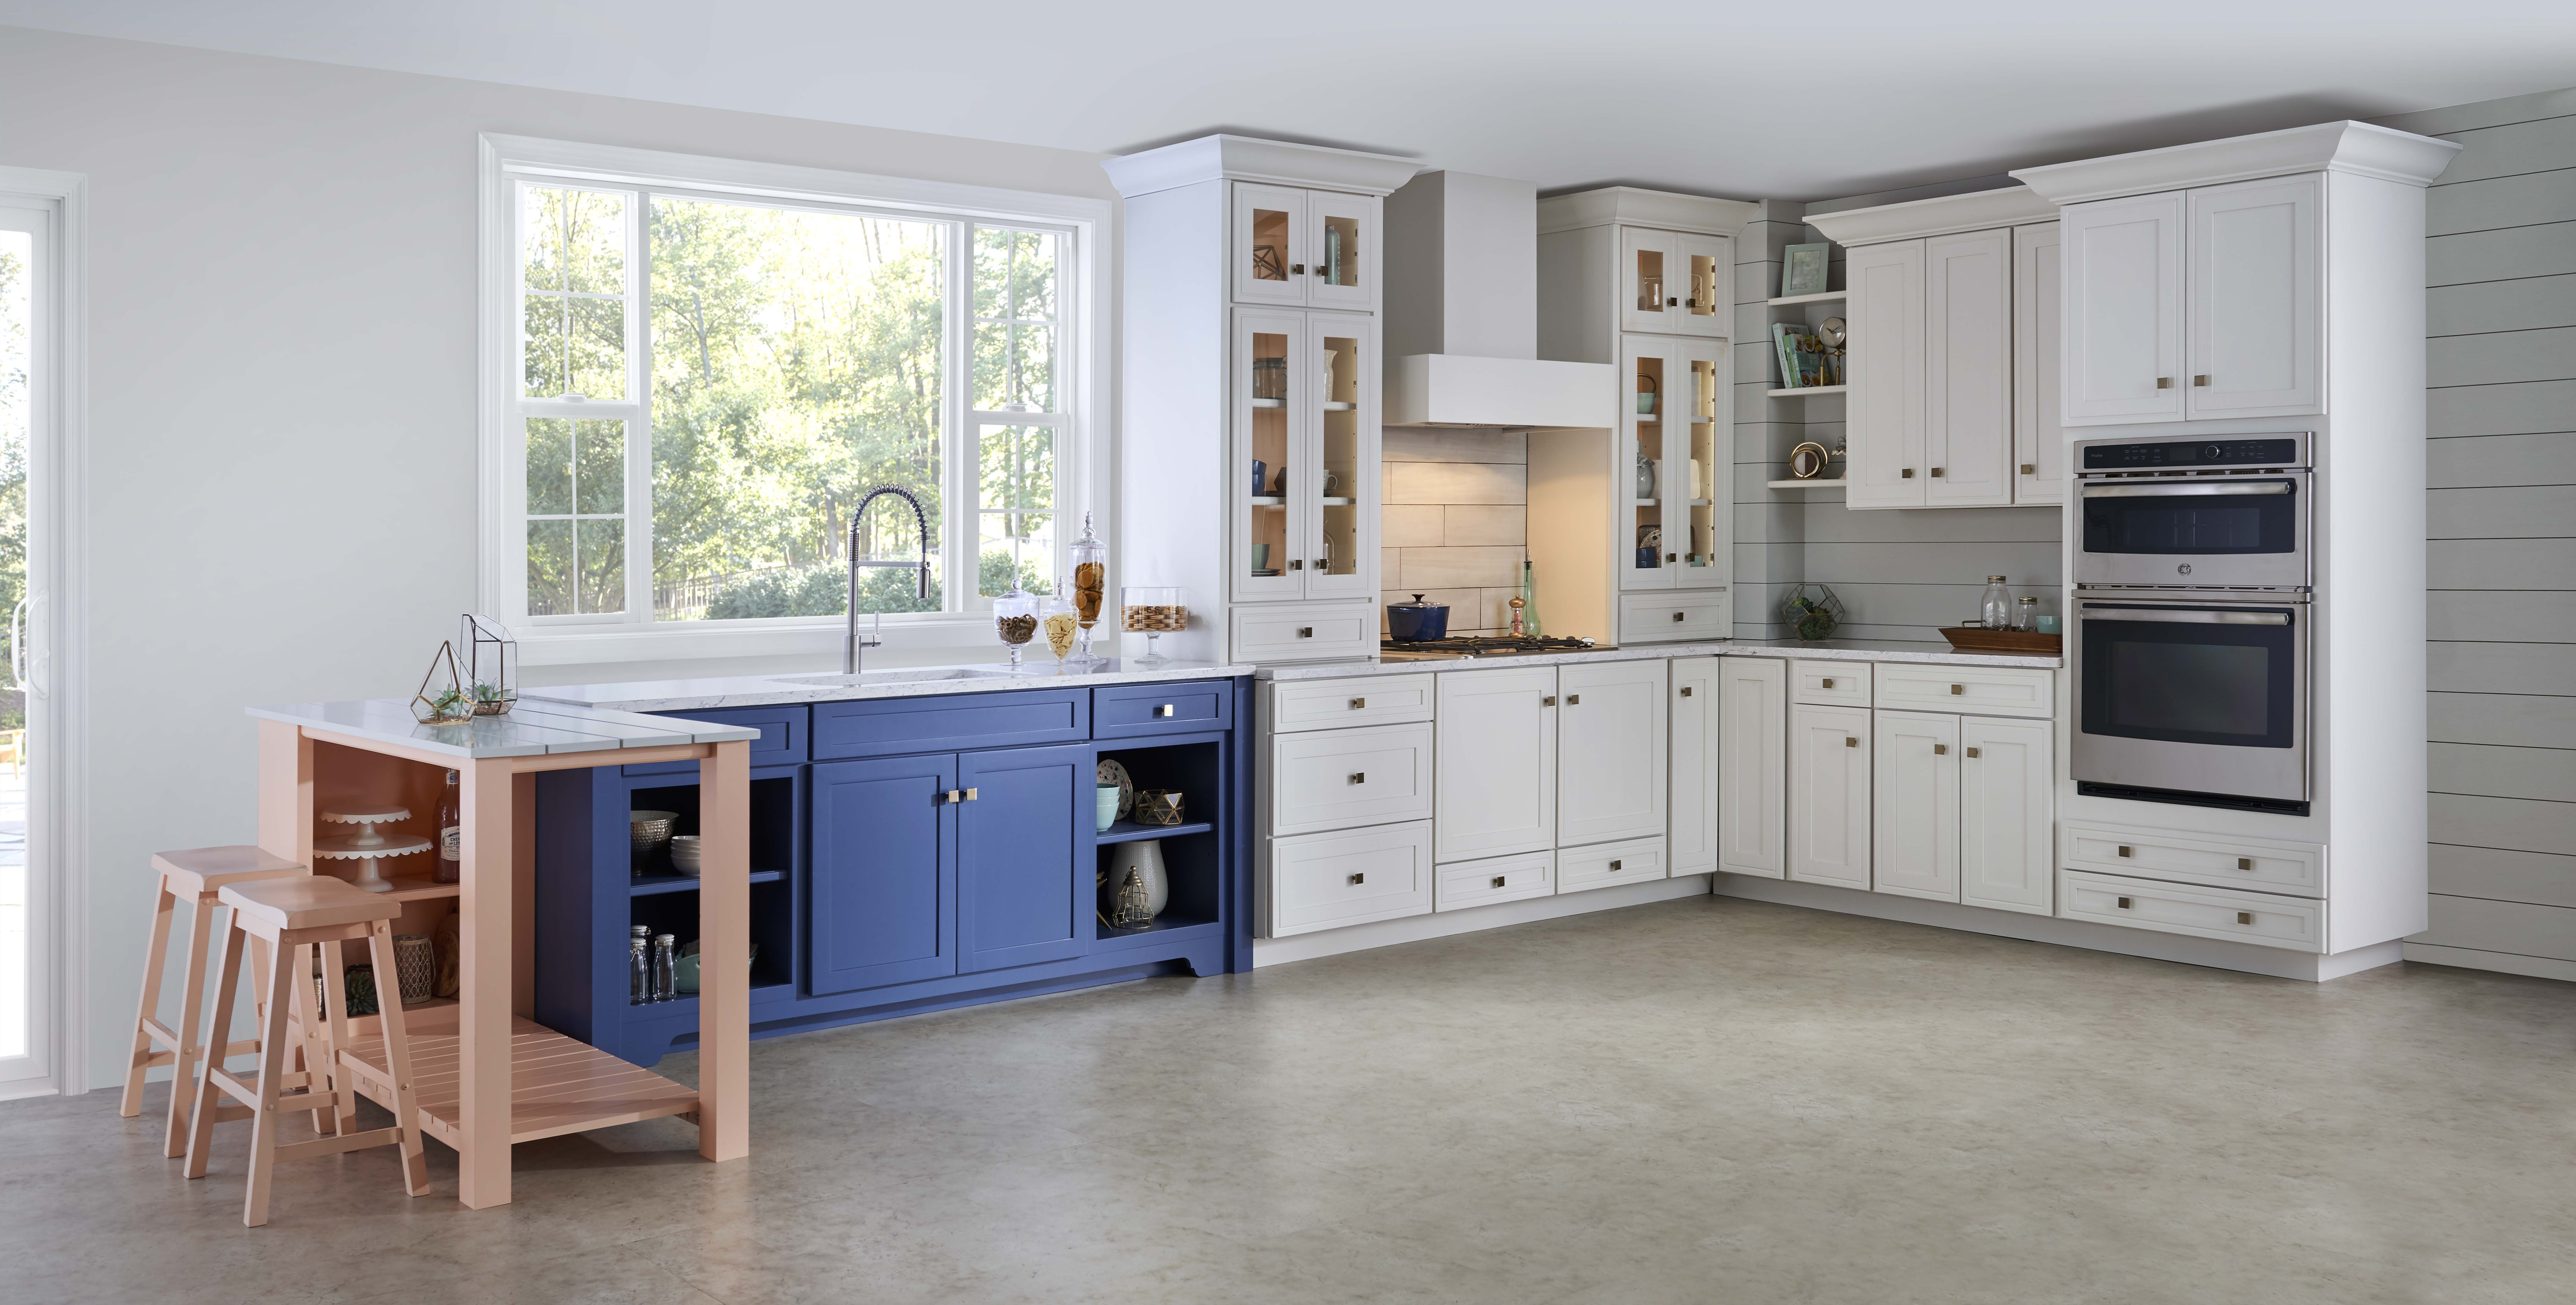 Use an accent color on a section of cabinets you want to for Kitchen cabinet section